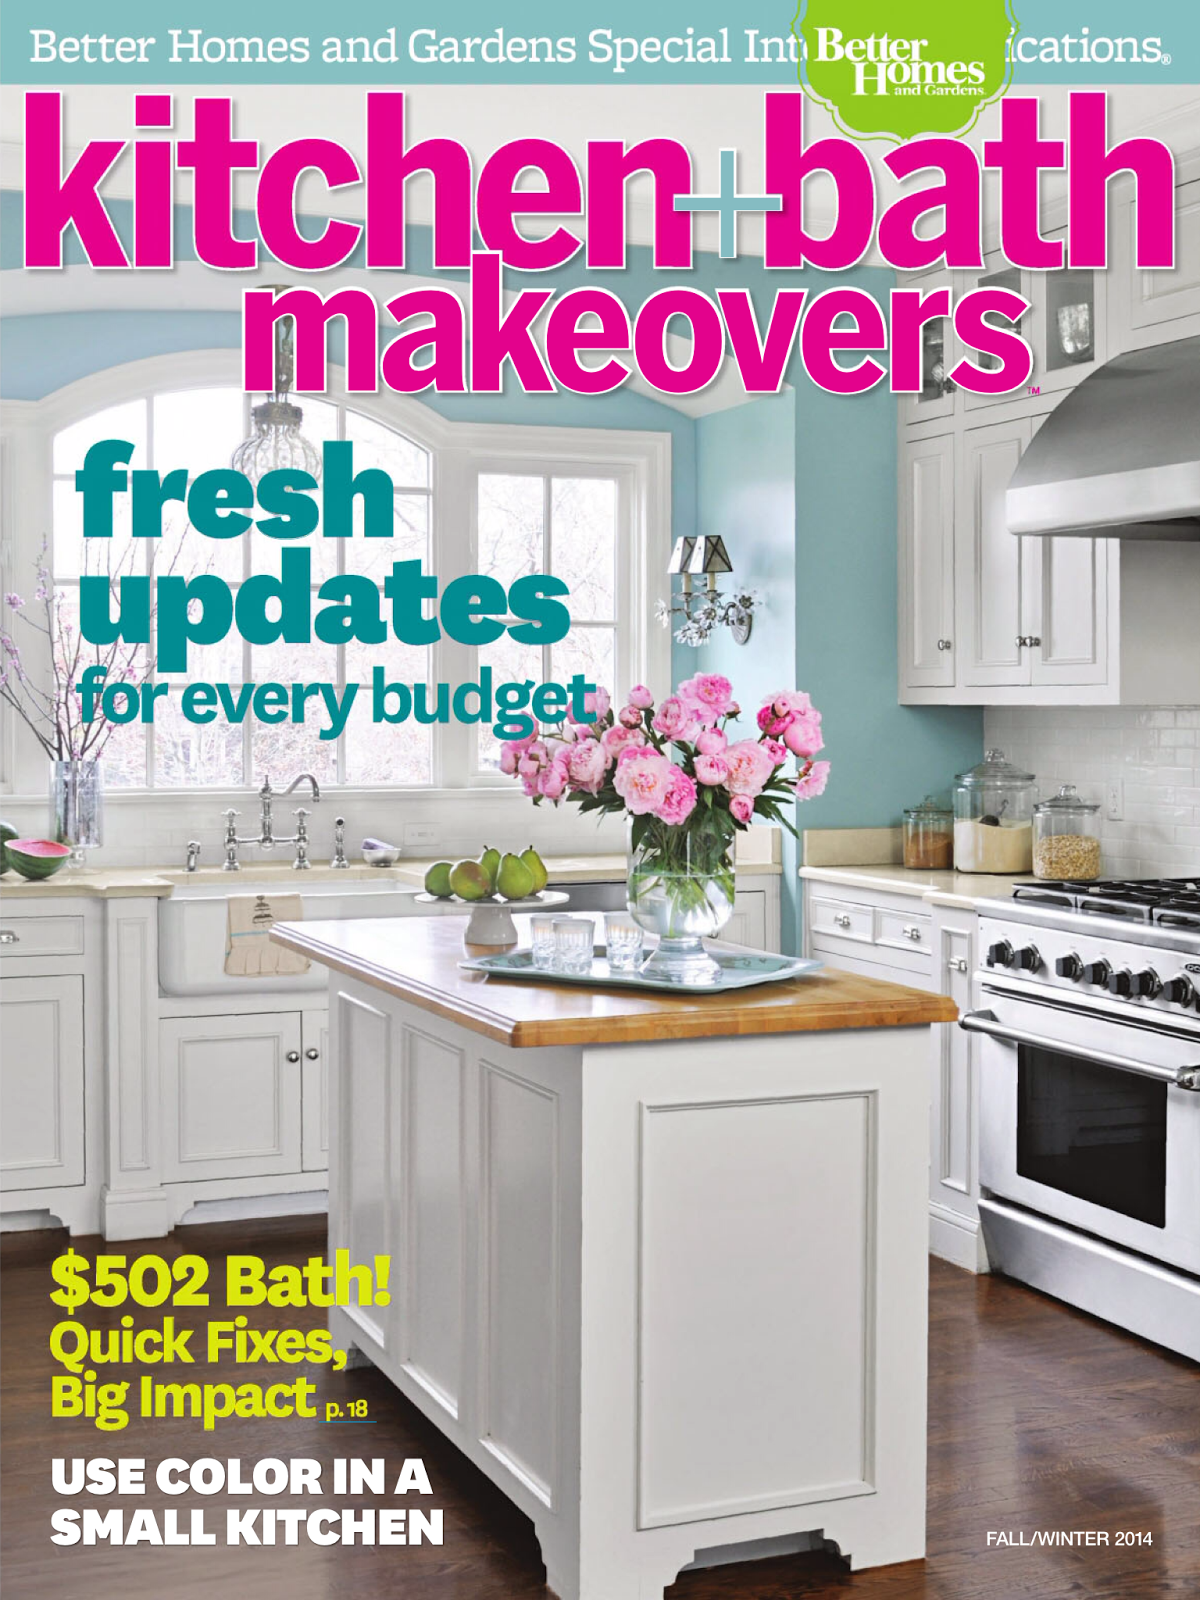 better homes and garden kitchen and bath makeovers fallwinter 2014 - Home And Garden Kitchen Designs